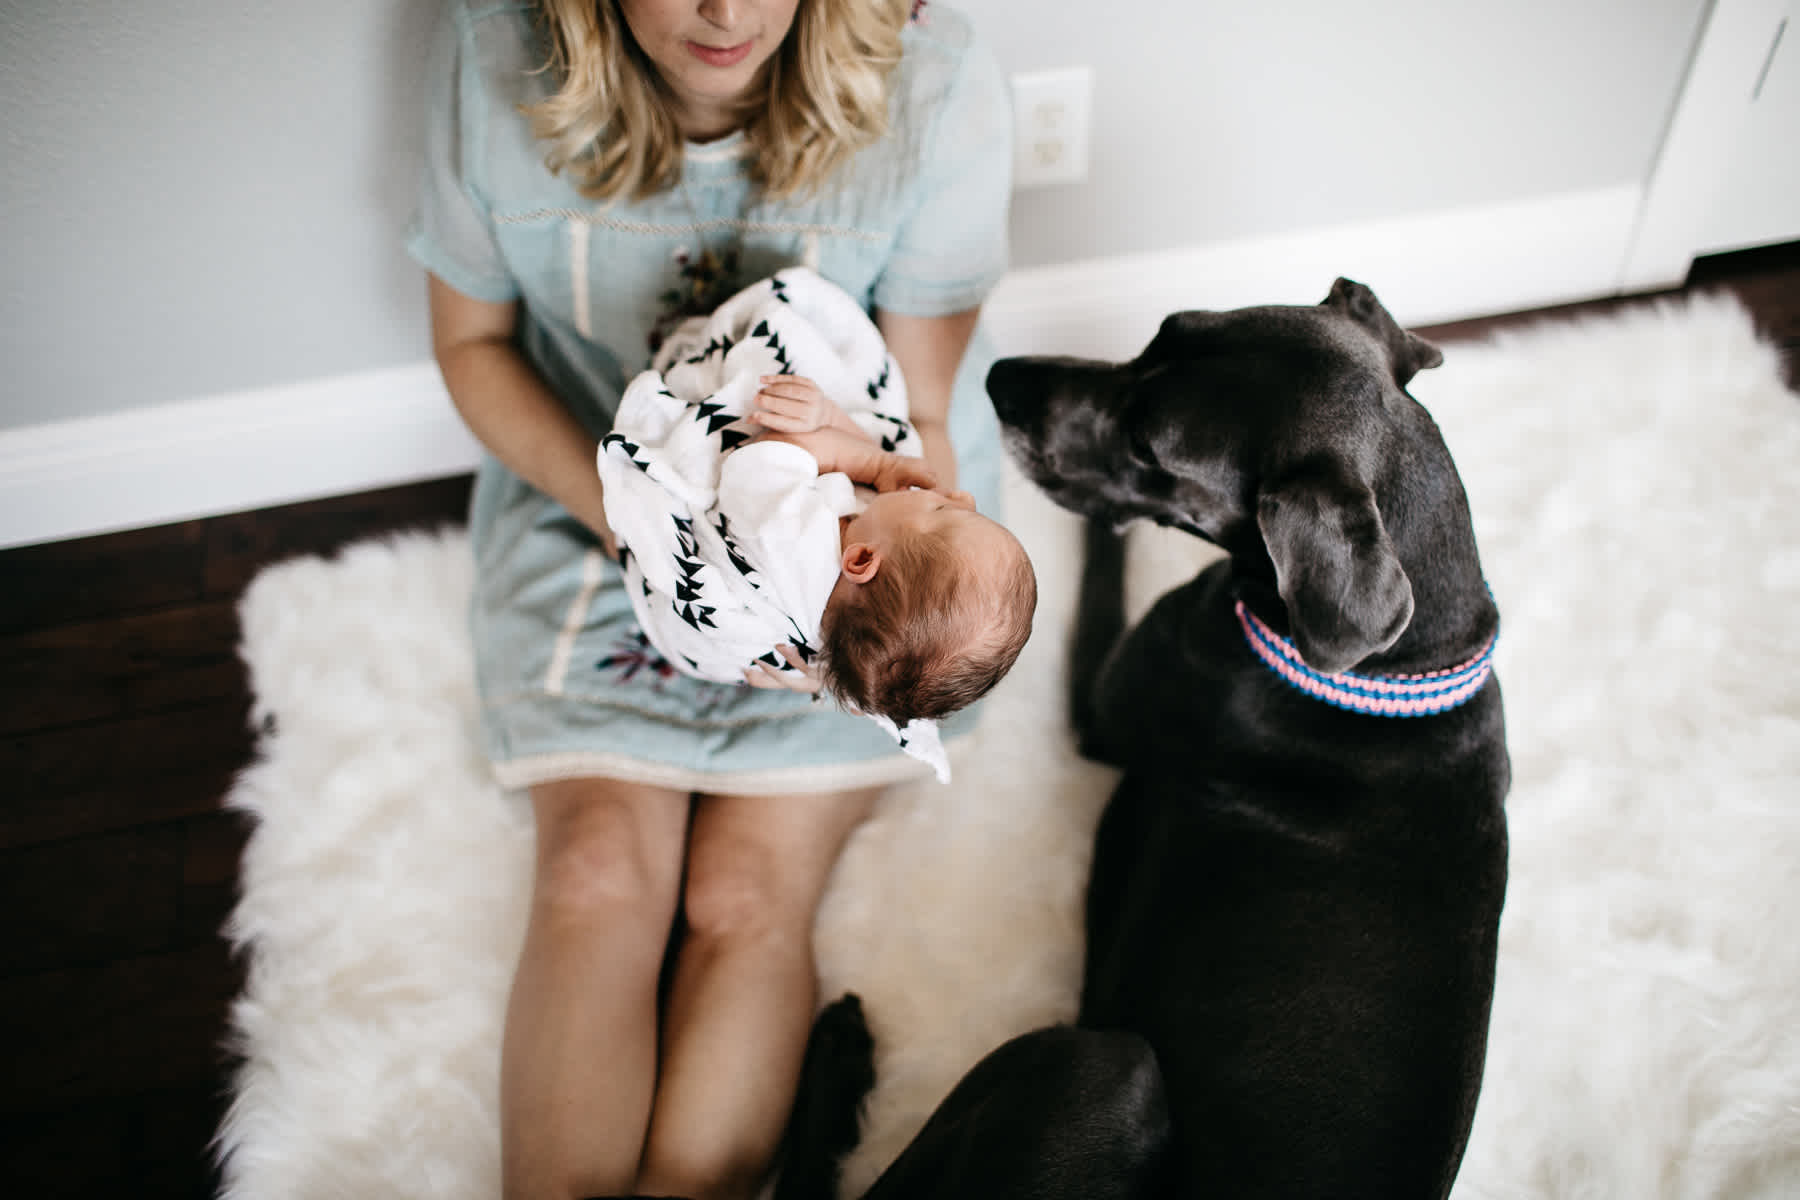 in-home-lifestyle-newborn-with-great-dane-dog-21